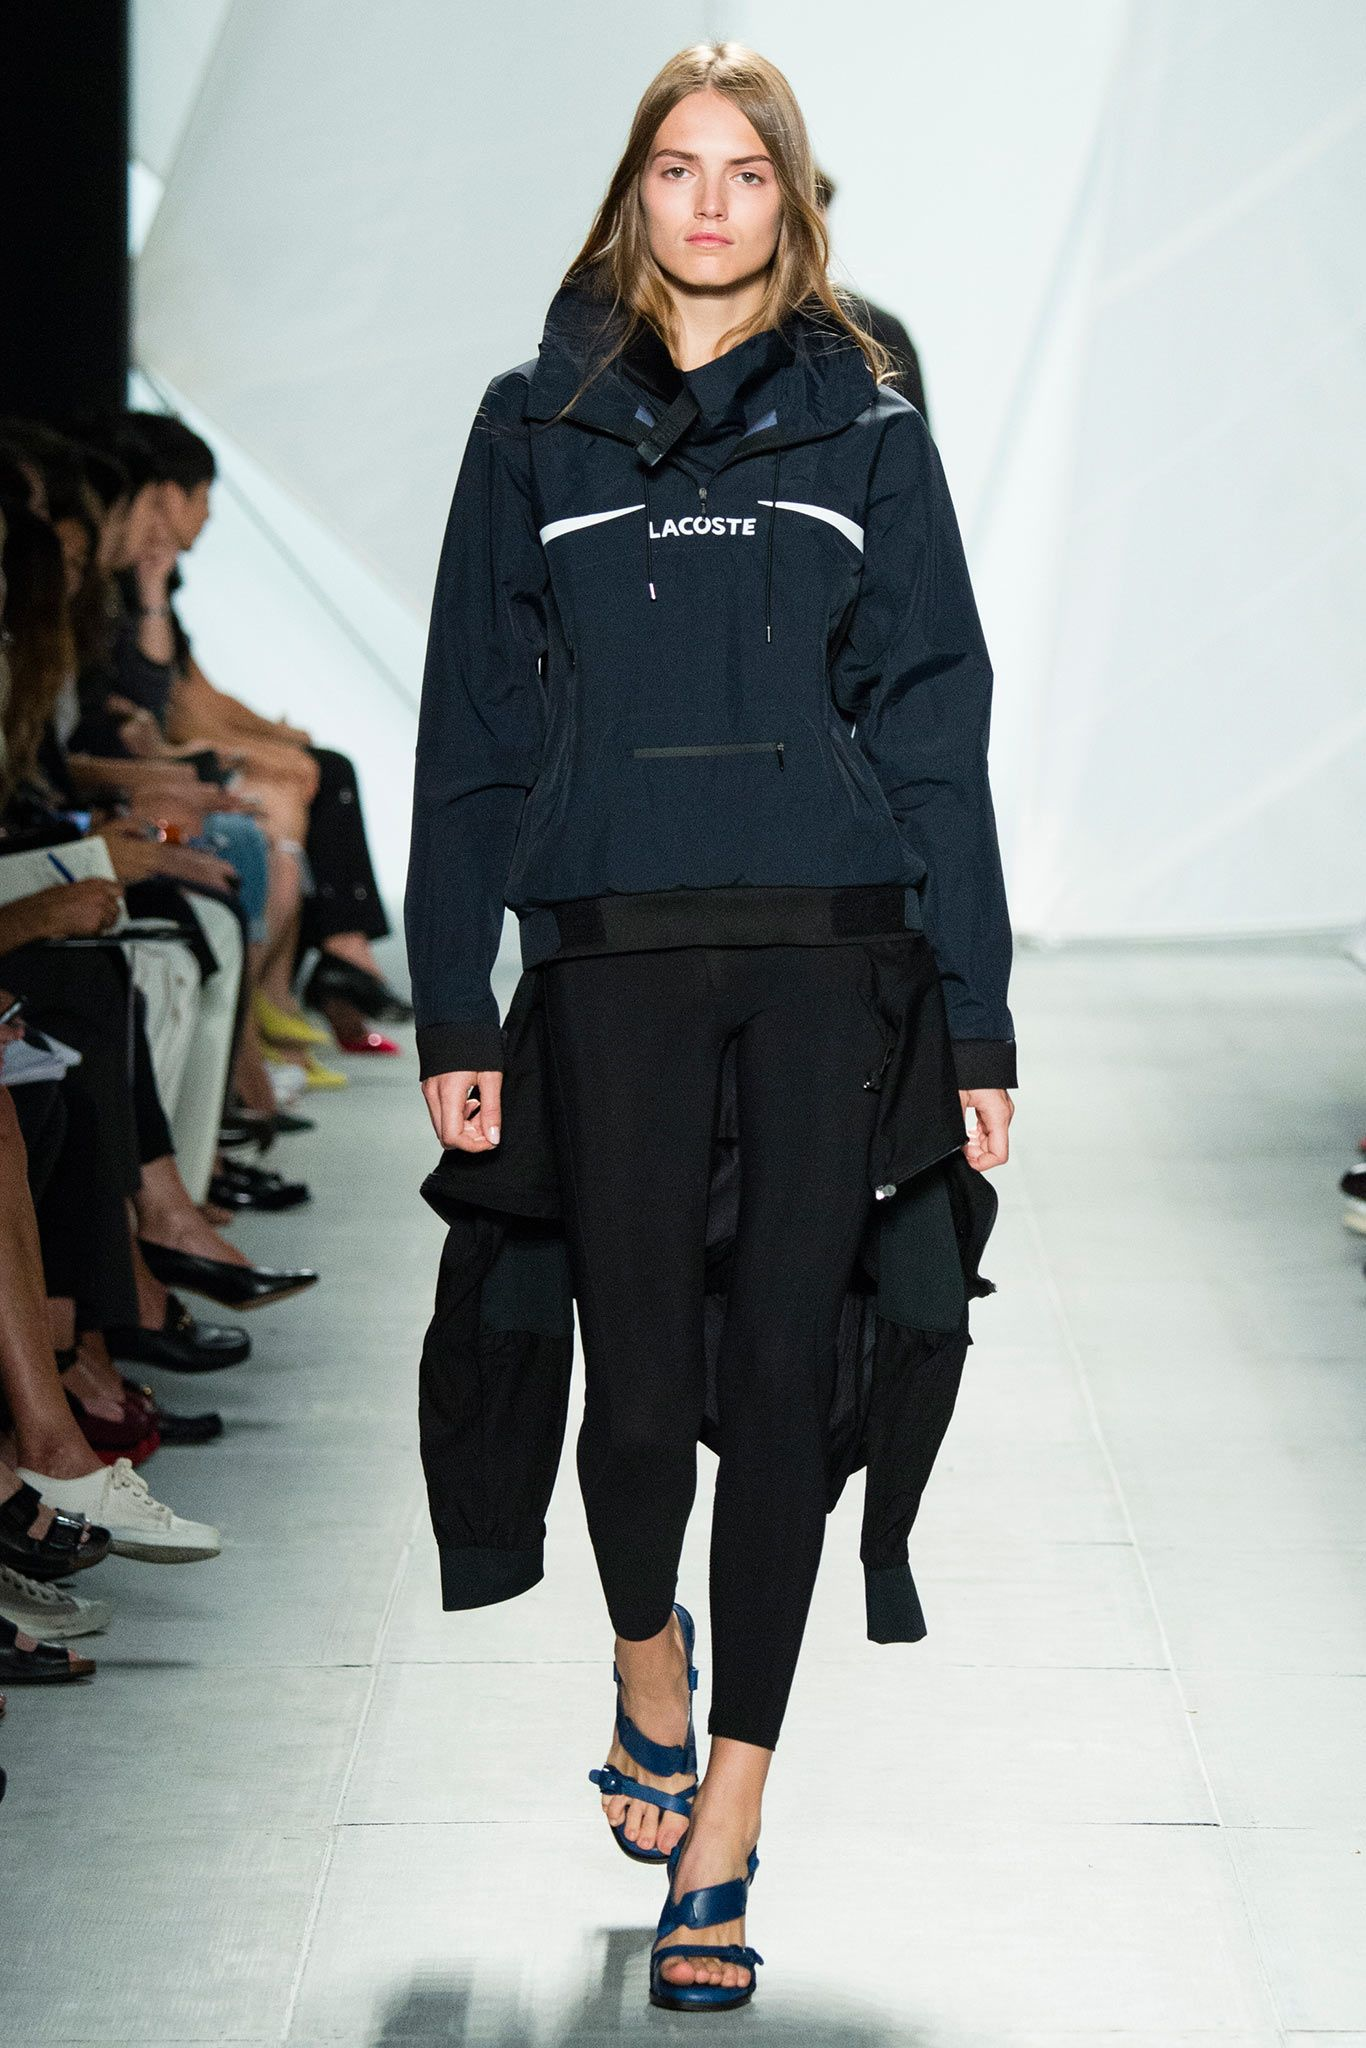 There were a couple pieces that almost did it...but not quite for me; However, I do think this jacket looks perfect for Canadian fall weather! Lacoste S/S15 #ss15 #nyfw